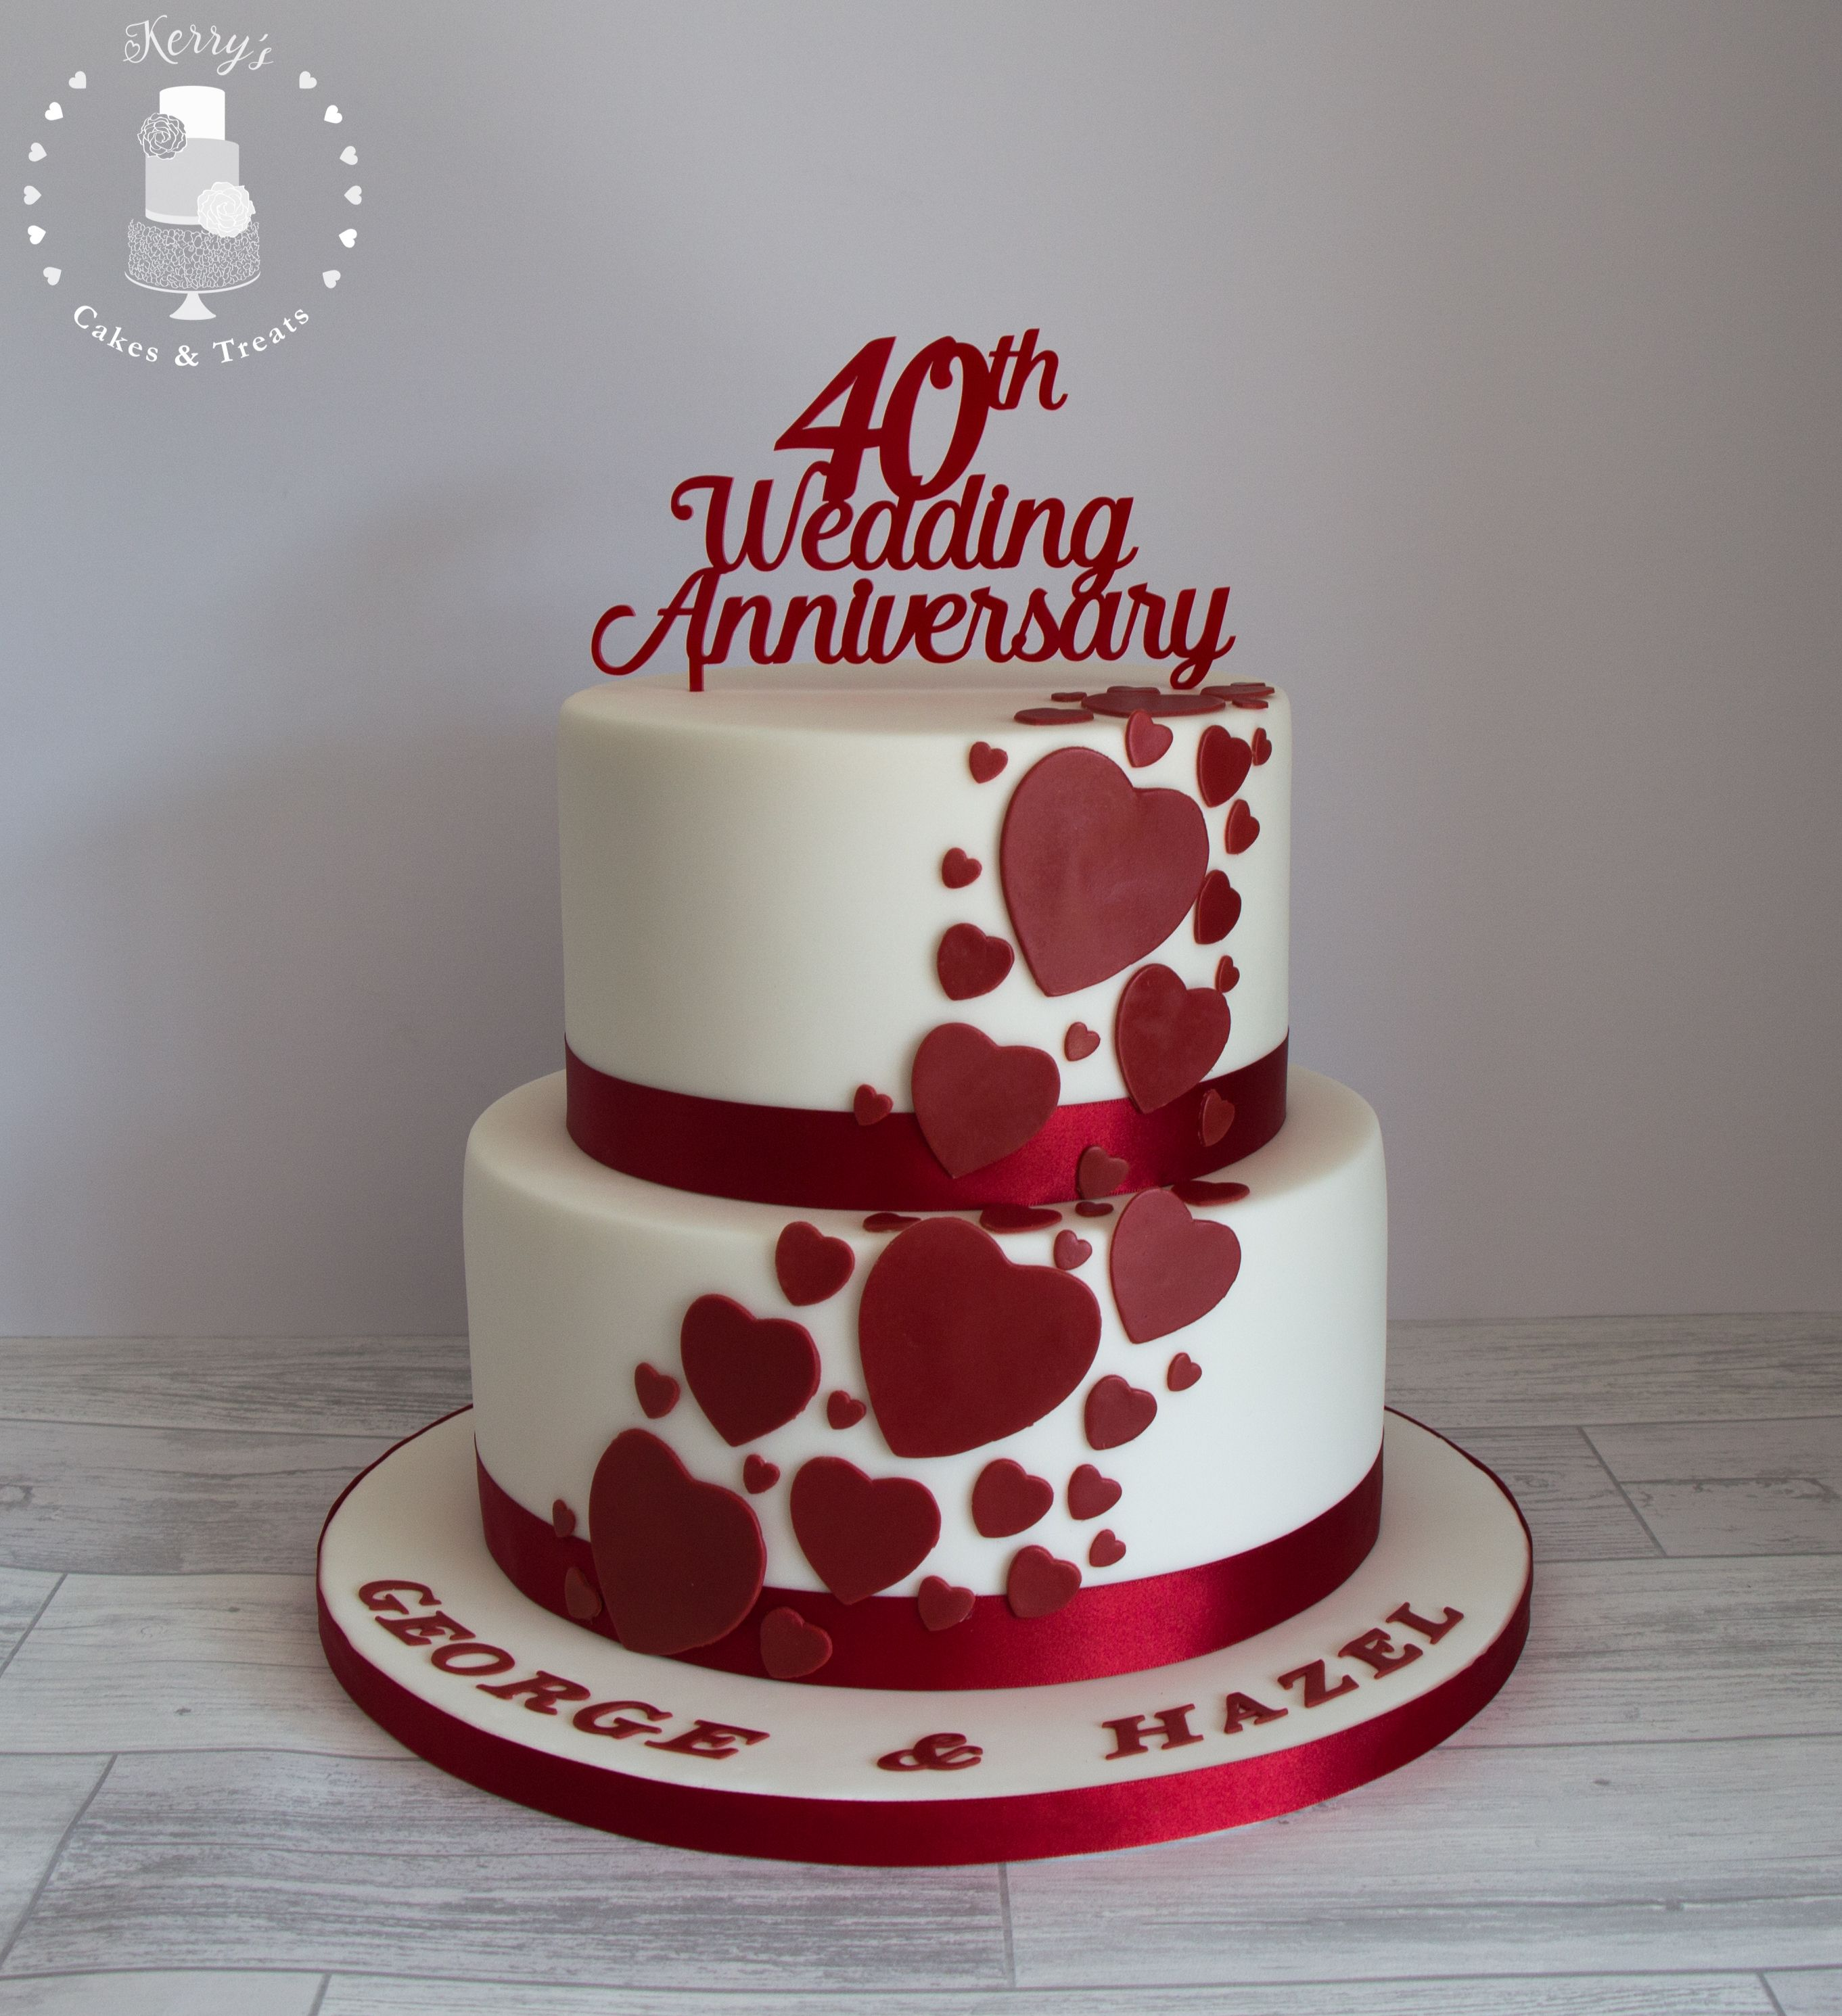 40th  Ruby  Wedding Anniversary cake  White with ruby red cascading     40th  Ruby  Wedding Anniversary cake  White with ruby red cascading hearts